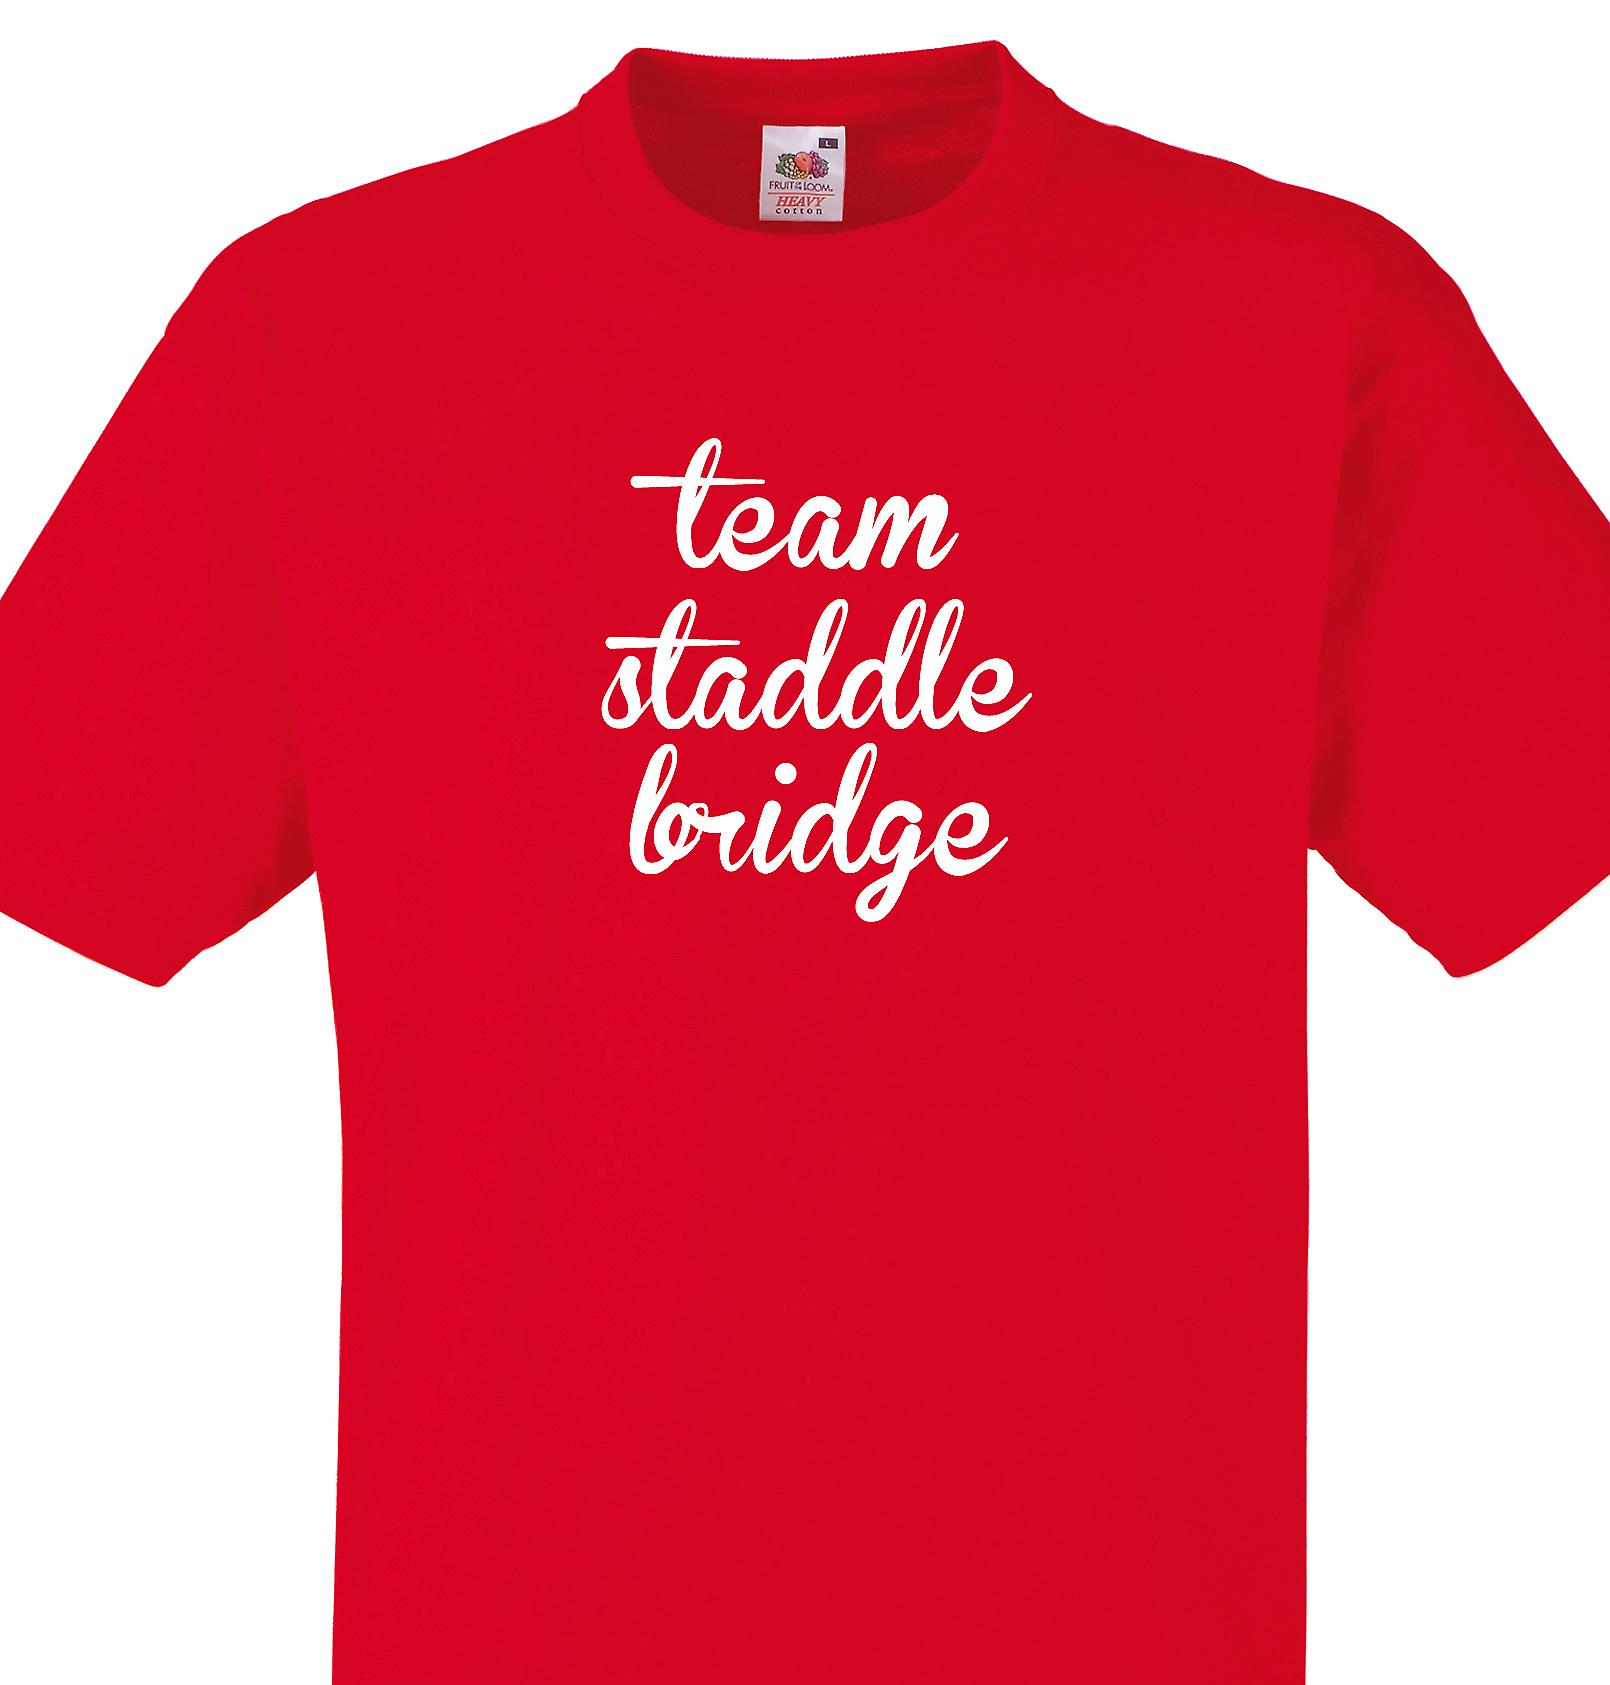 Team Staddle bridge Red T shirt